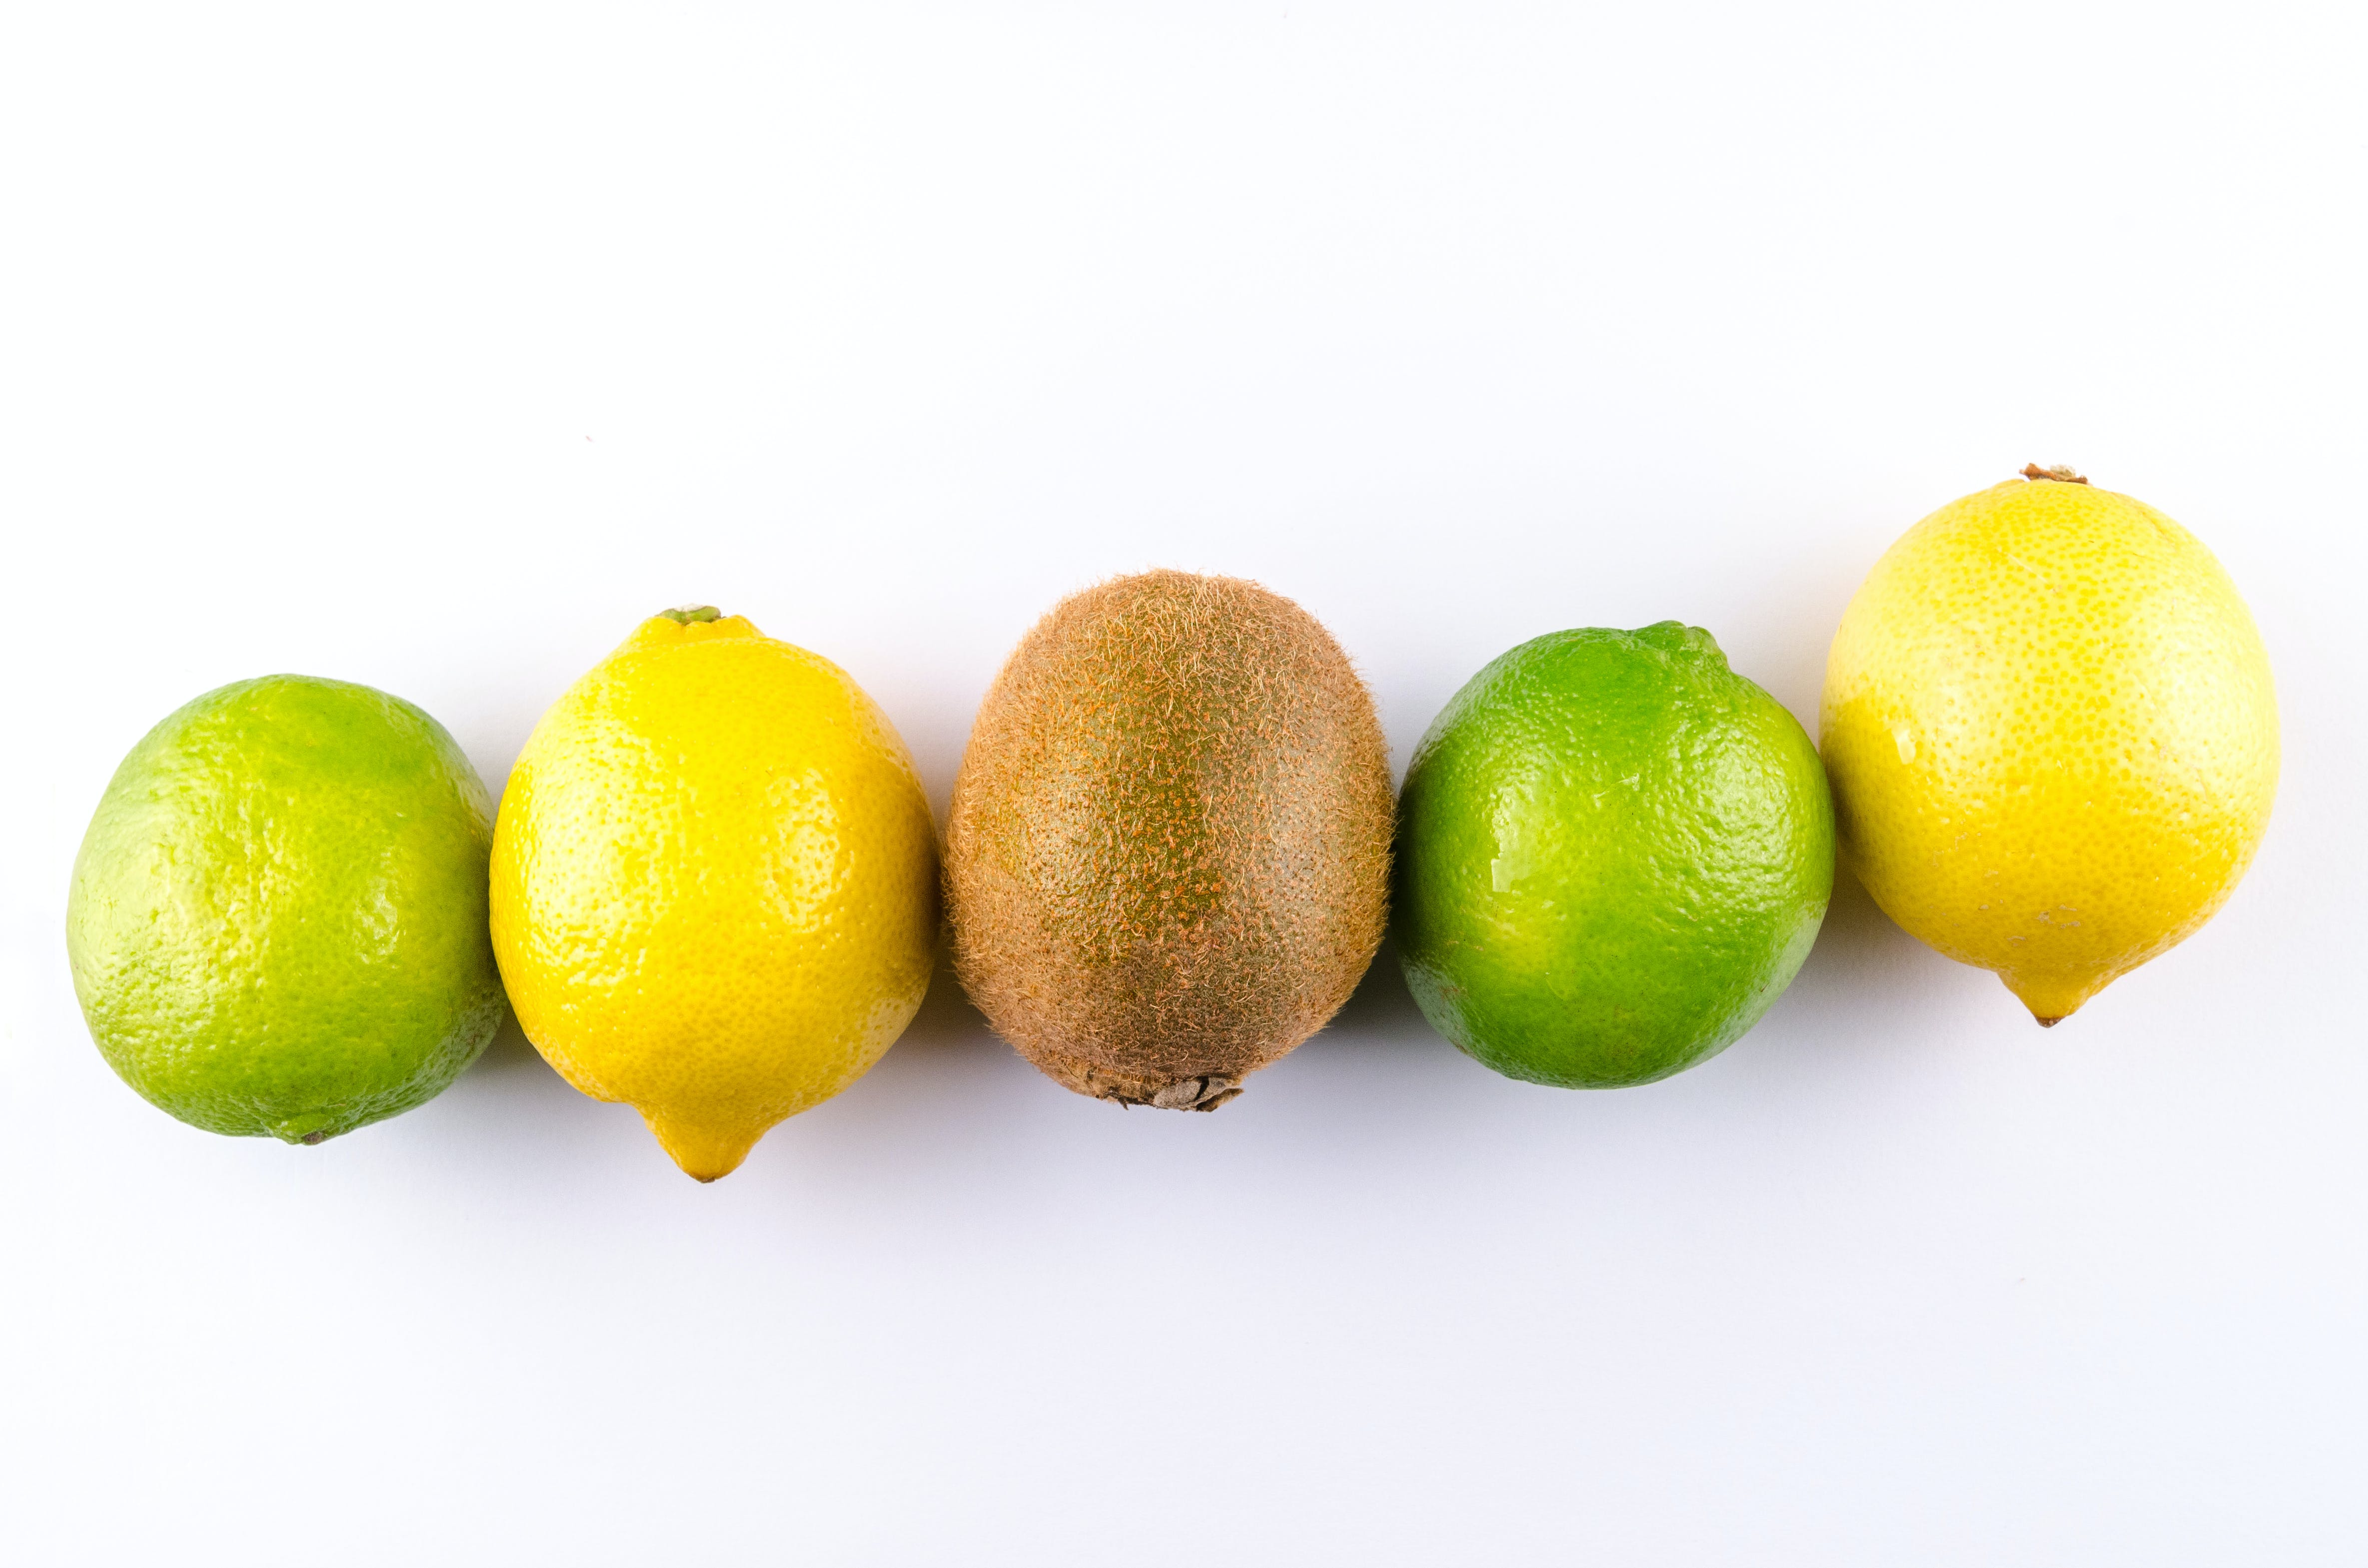 Flat Lay Photo of Two Lemon, Two Limes, and One Kiwi